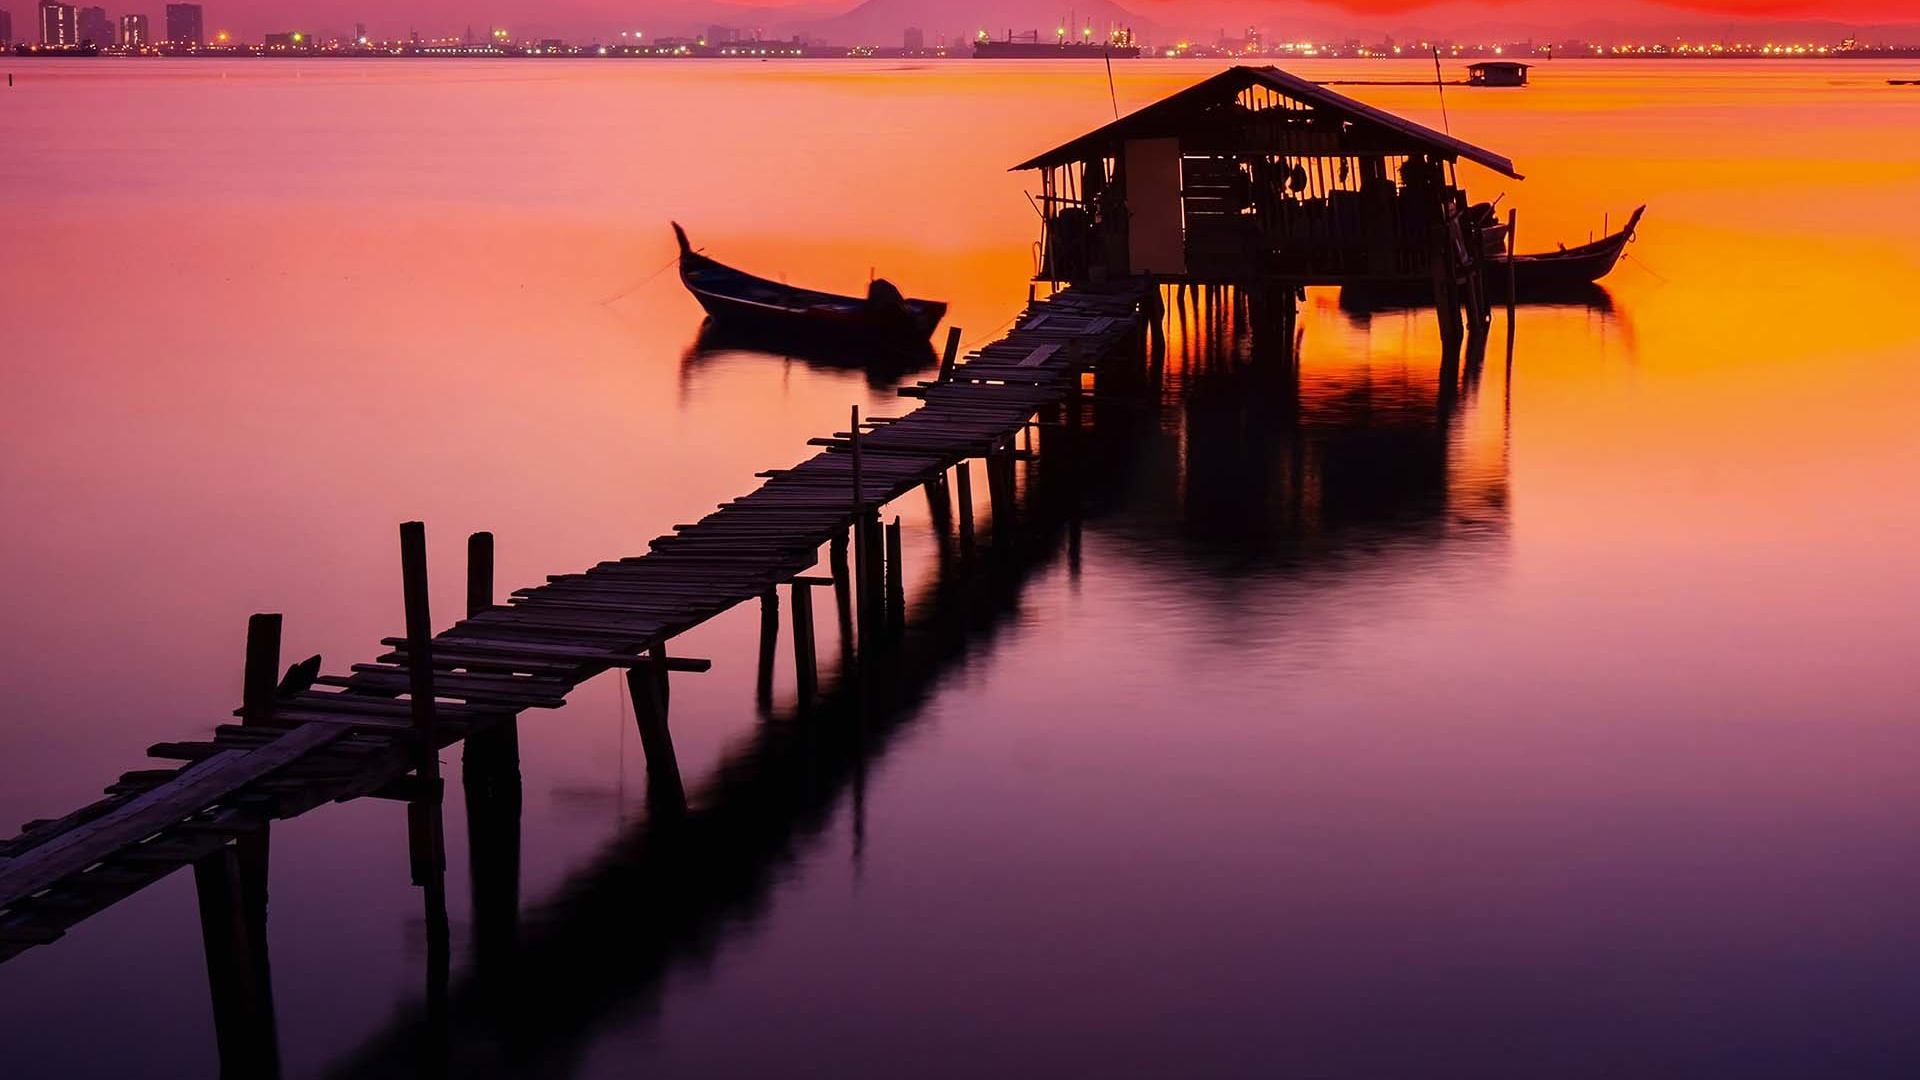 A jetty in Thailand